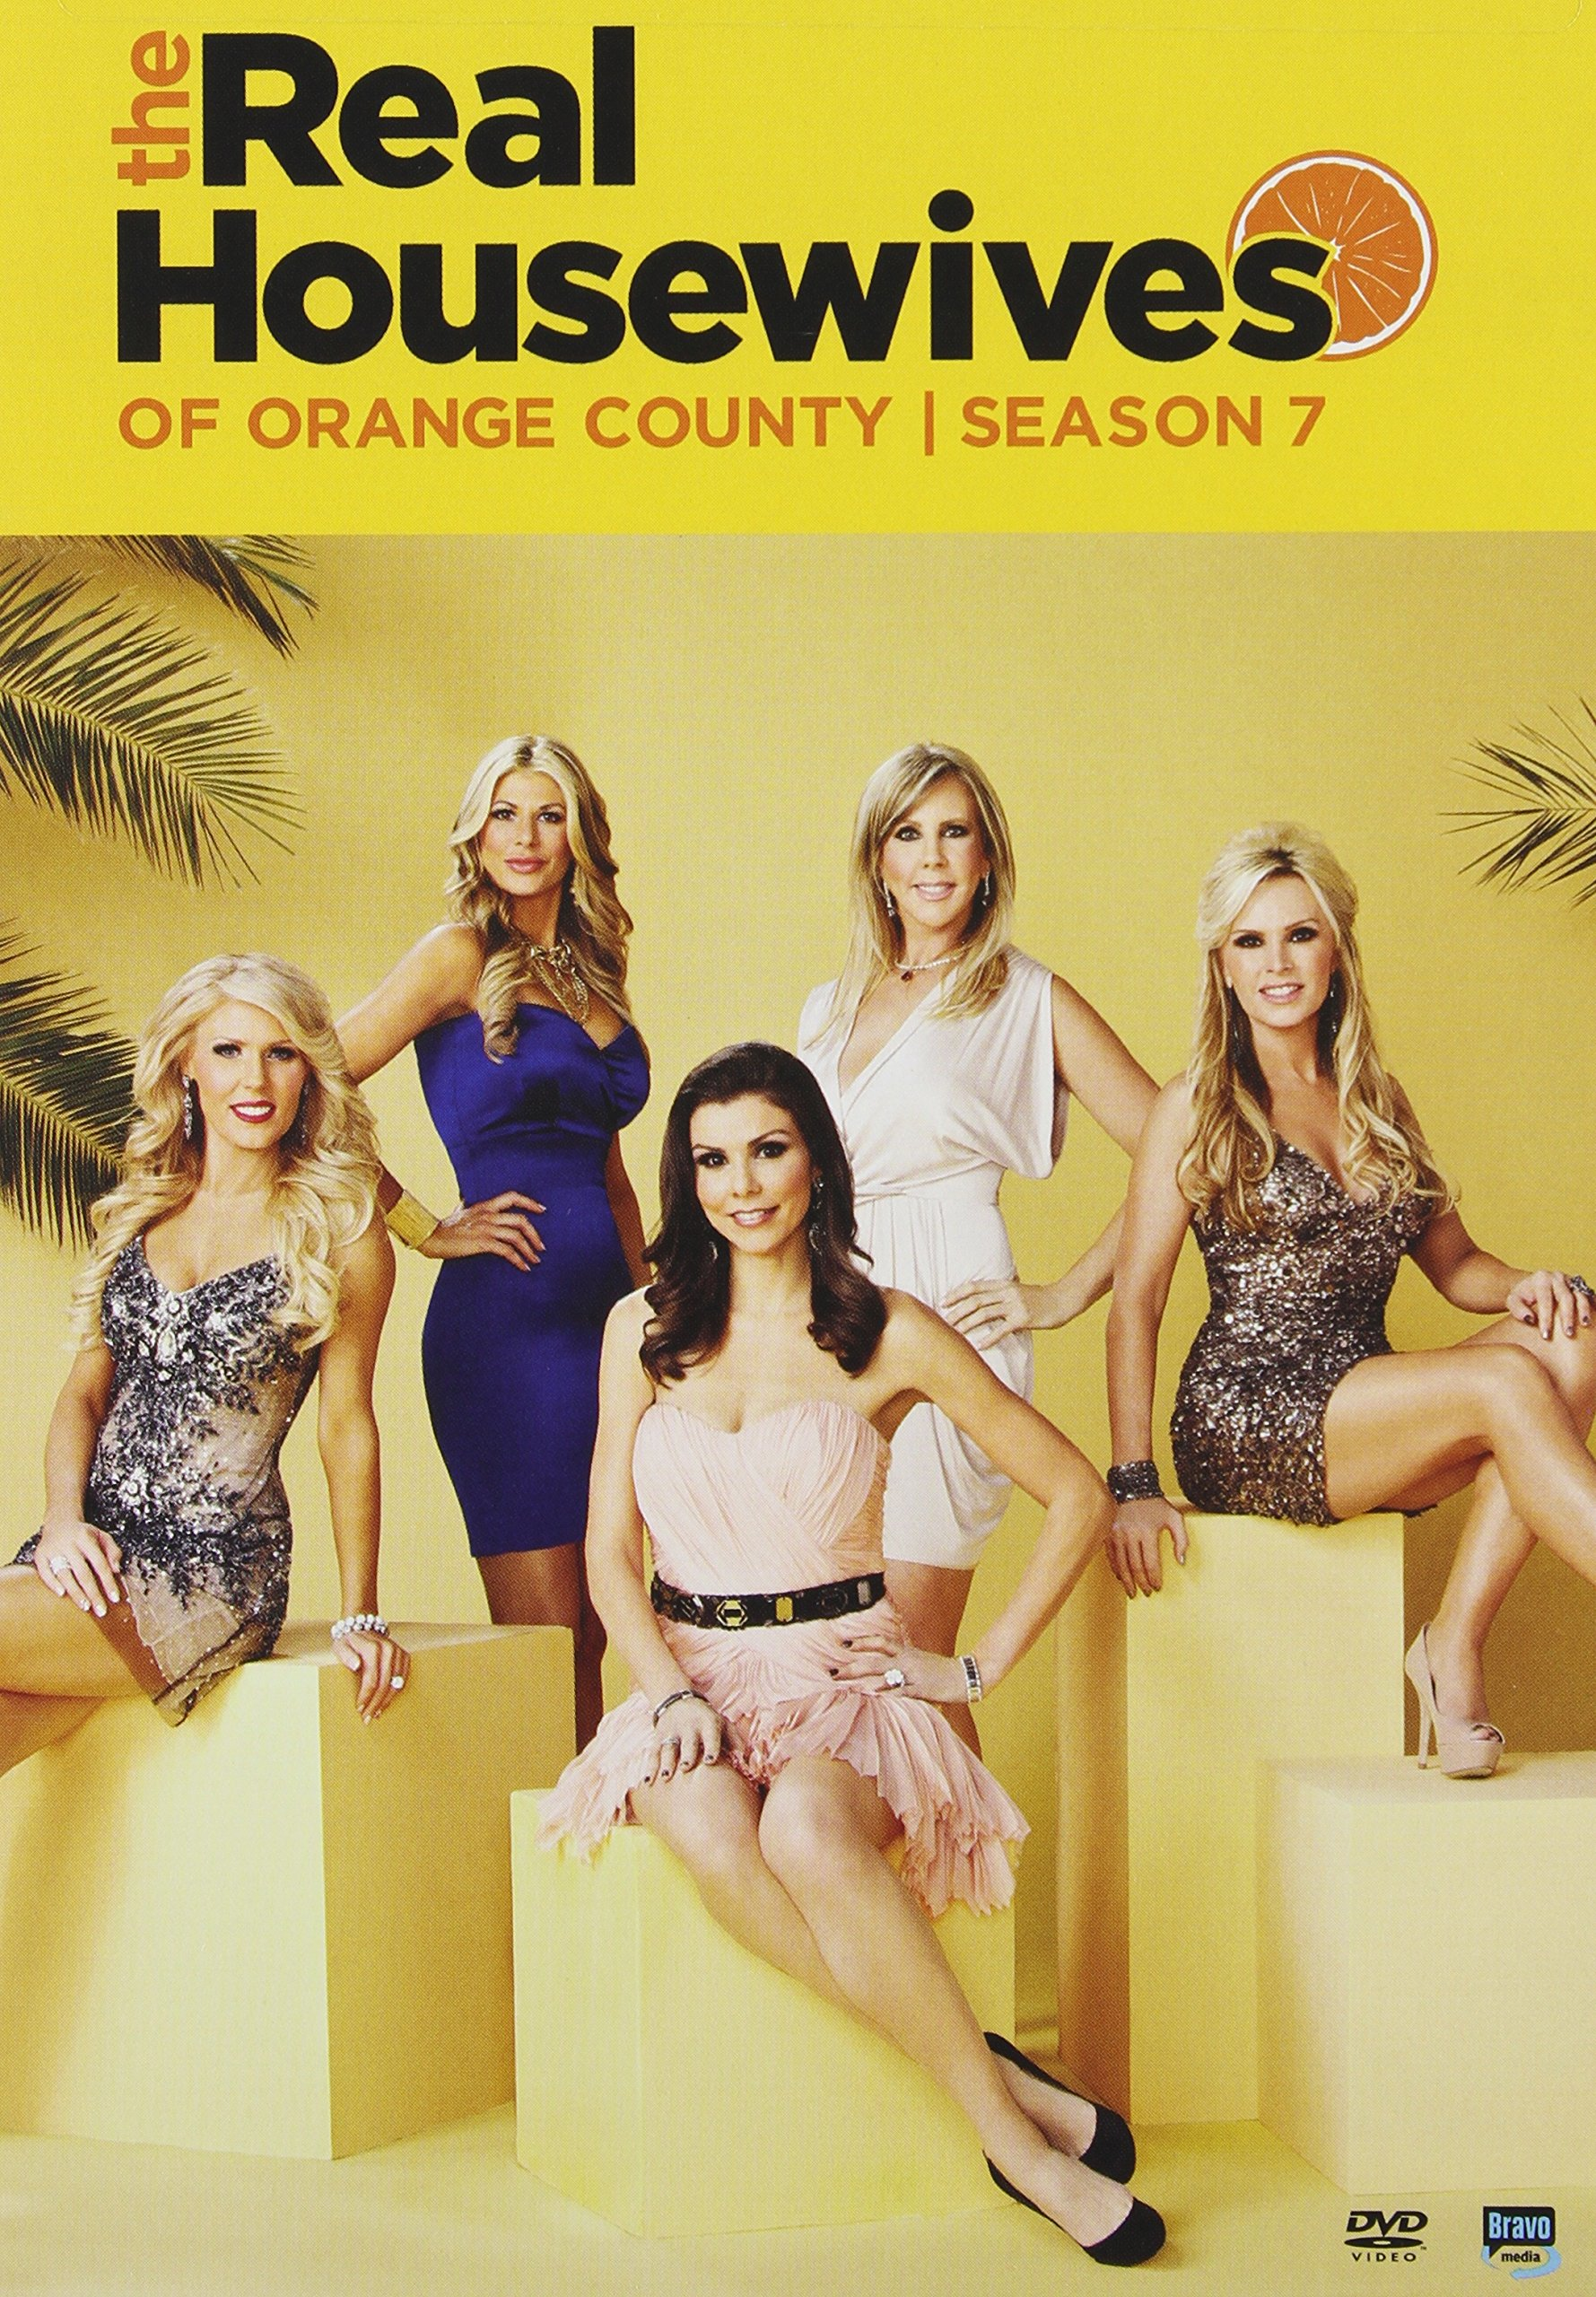 The Real Housewives of Orange County:  Season 7 by LionsGate